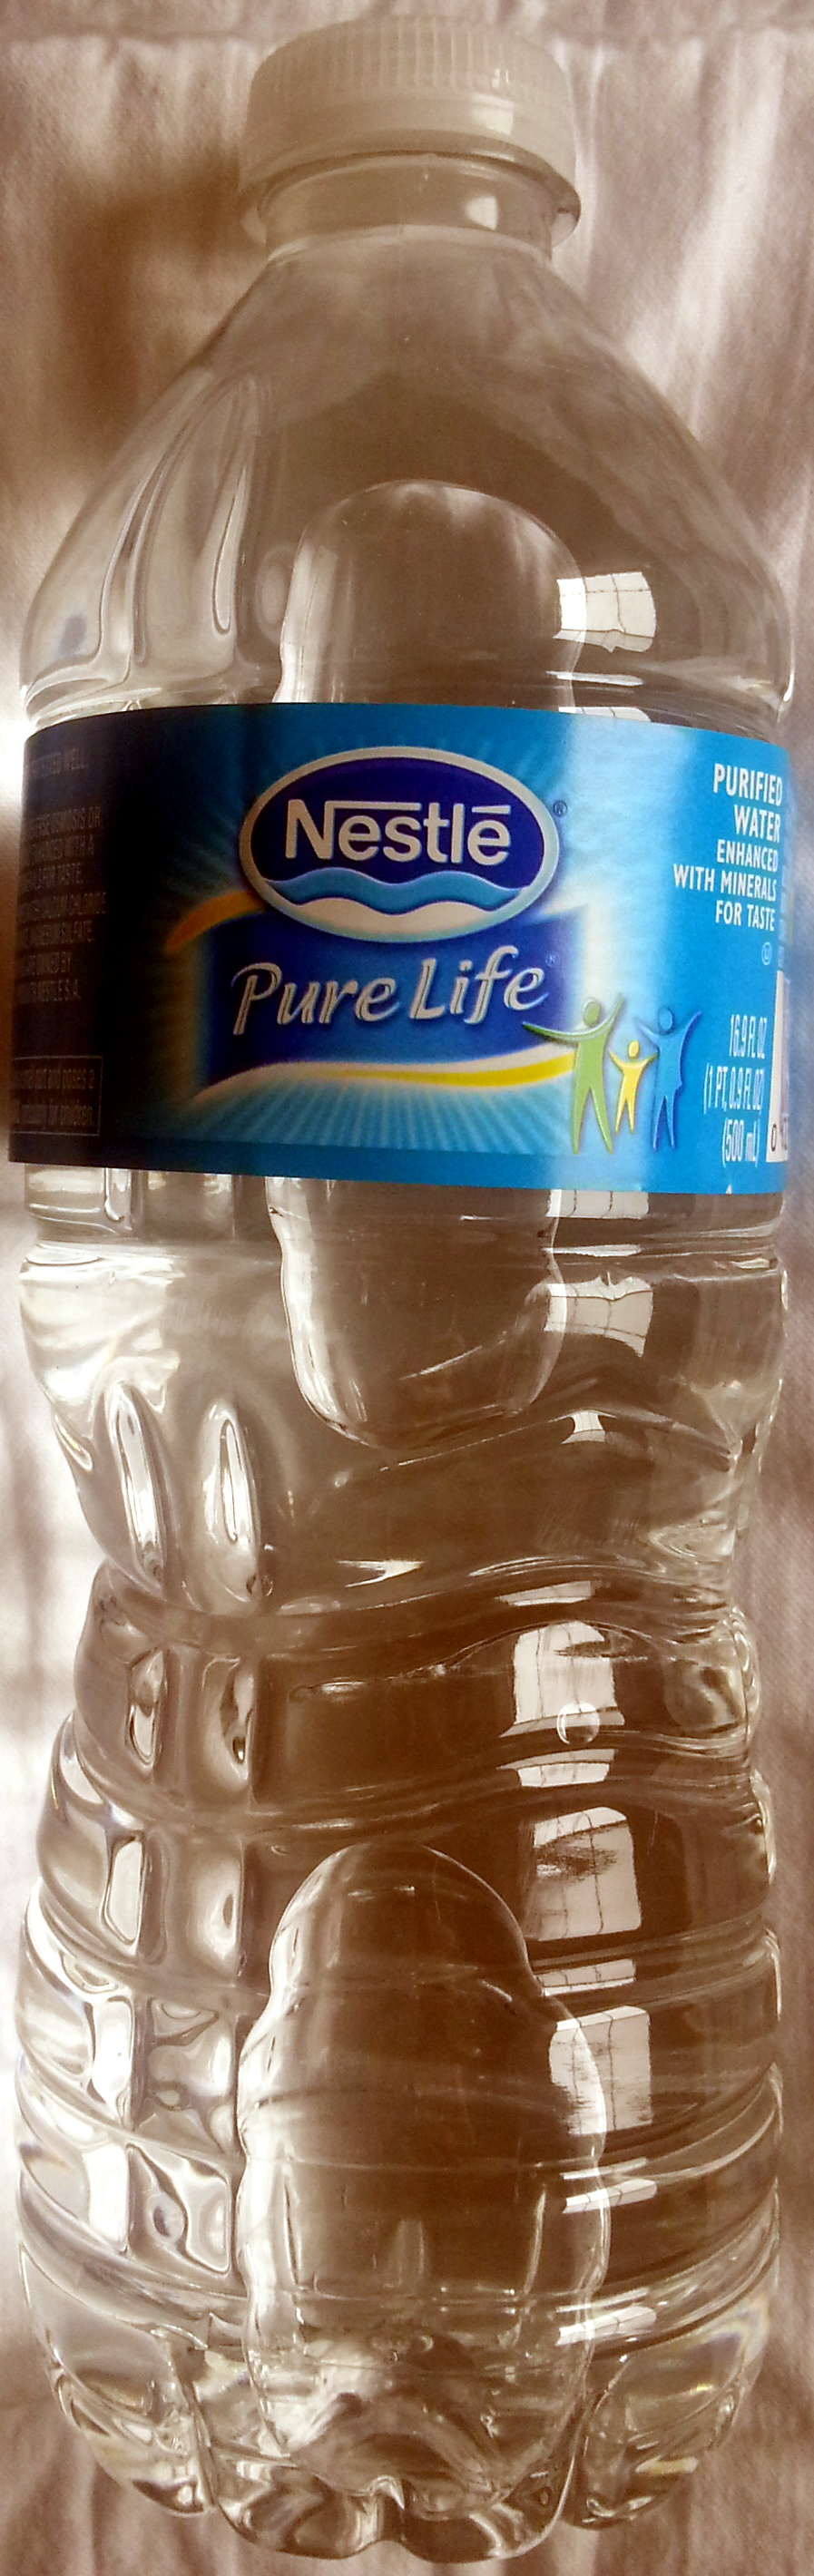 Pure Life - Product - en